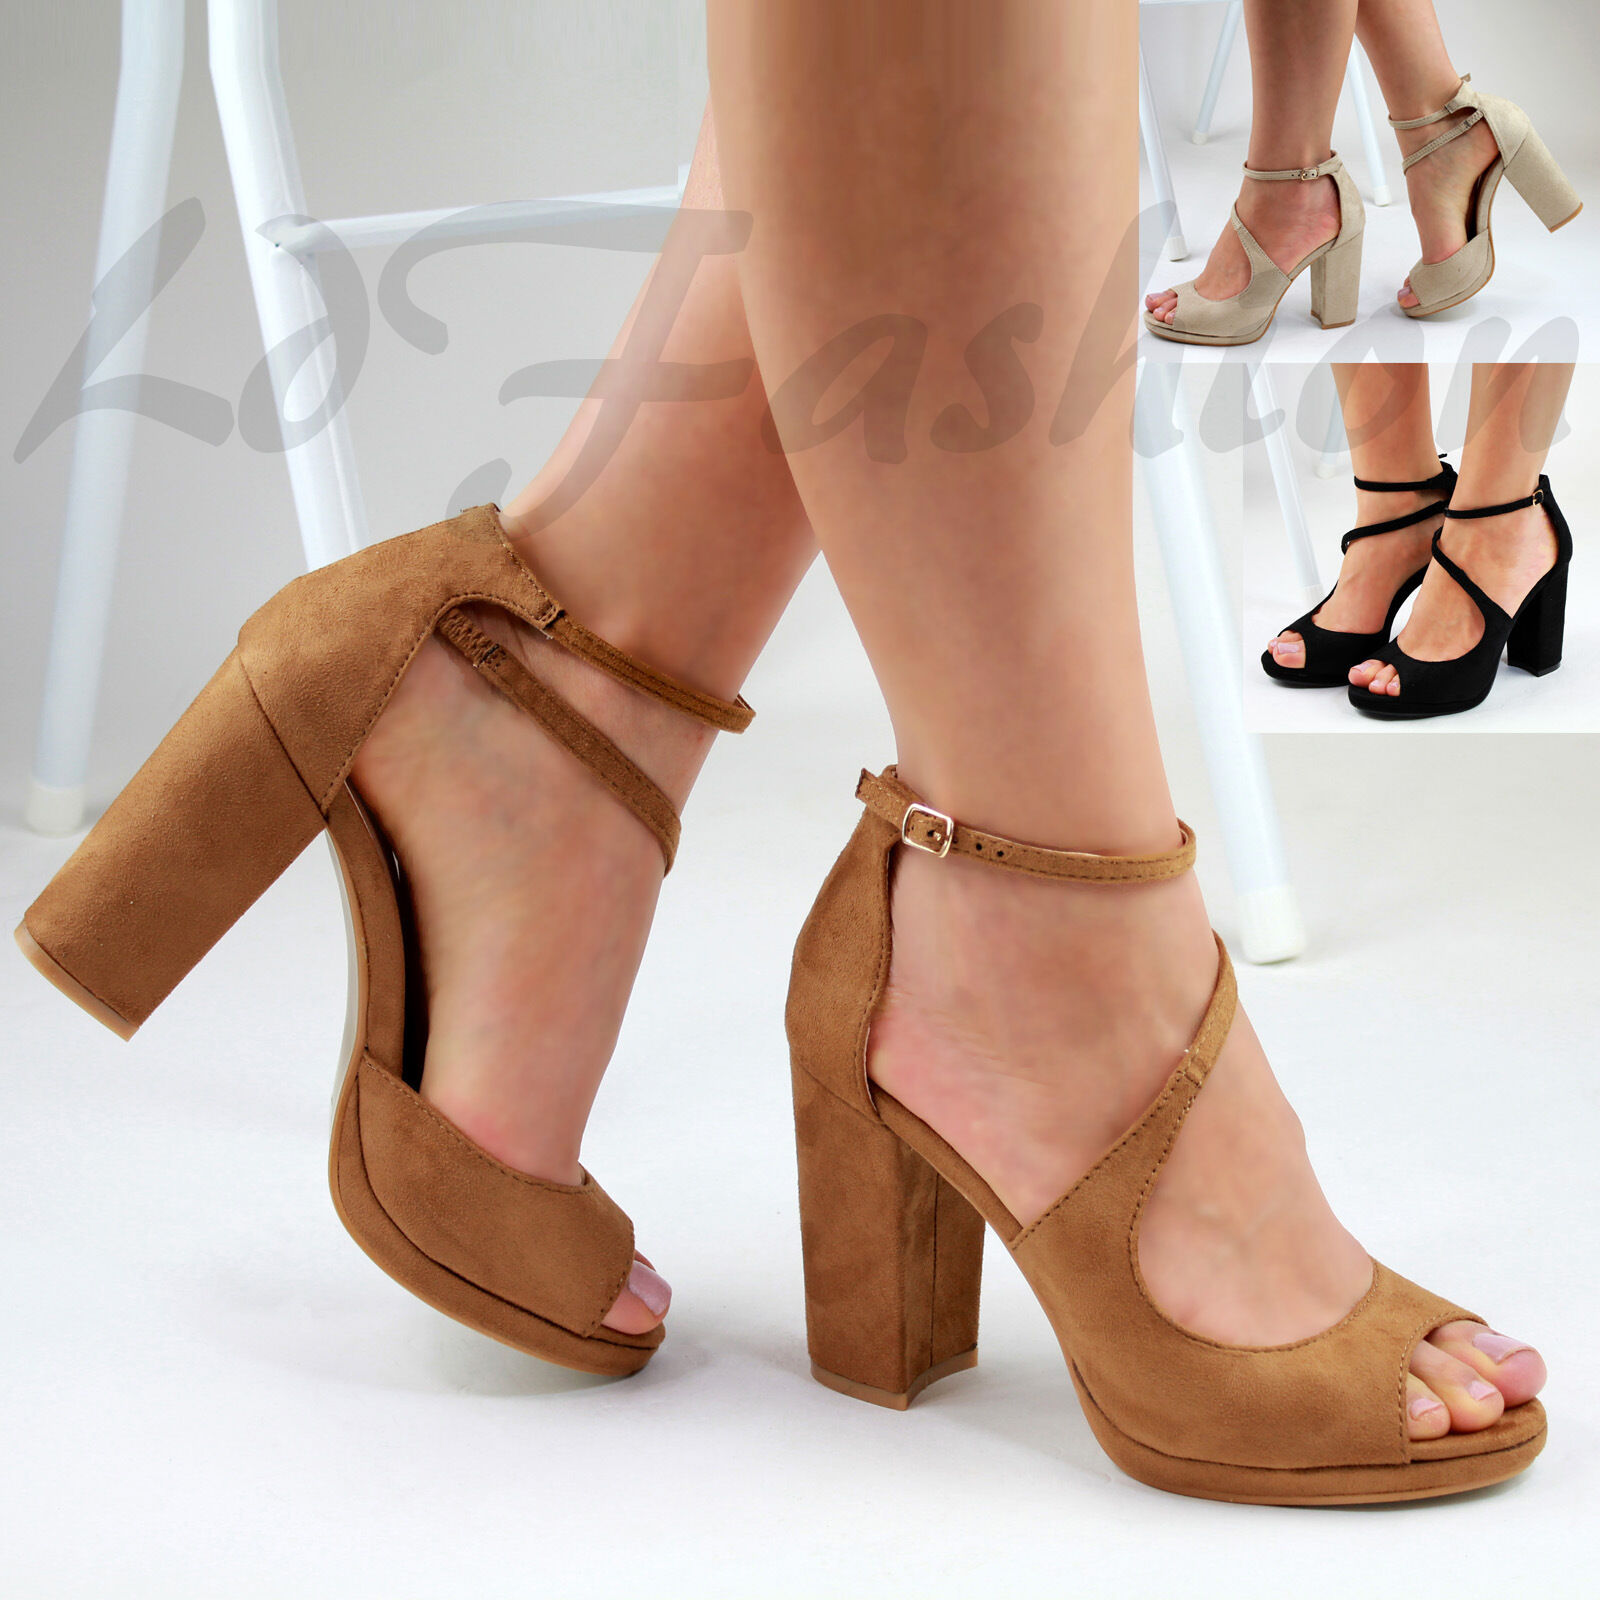 New Womens High Strap Block Heel Sandals Ankle Strap High Peep Toe Low Platform Shoes Sizes a281aa